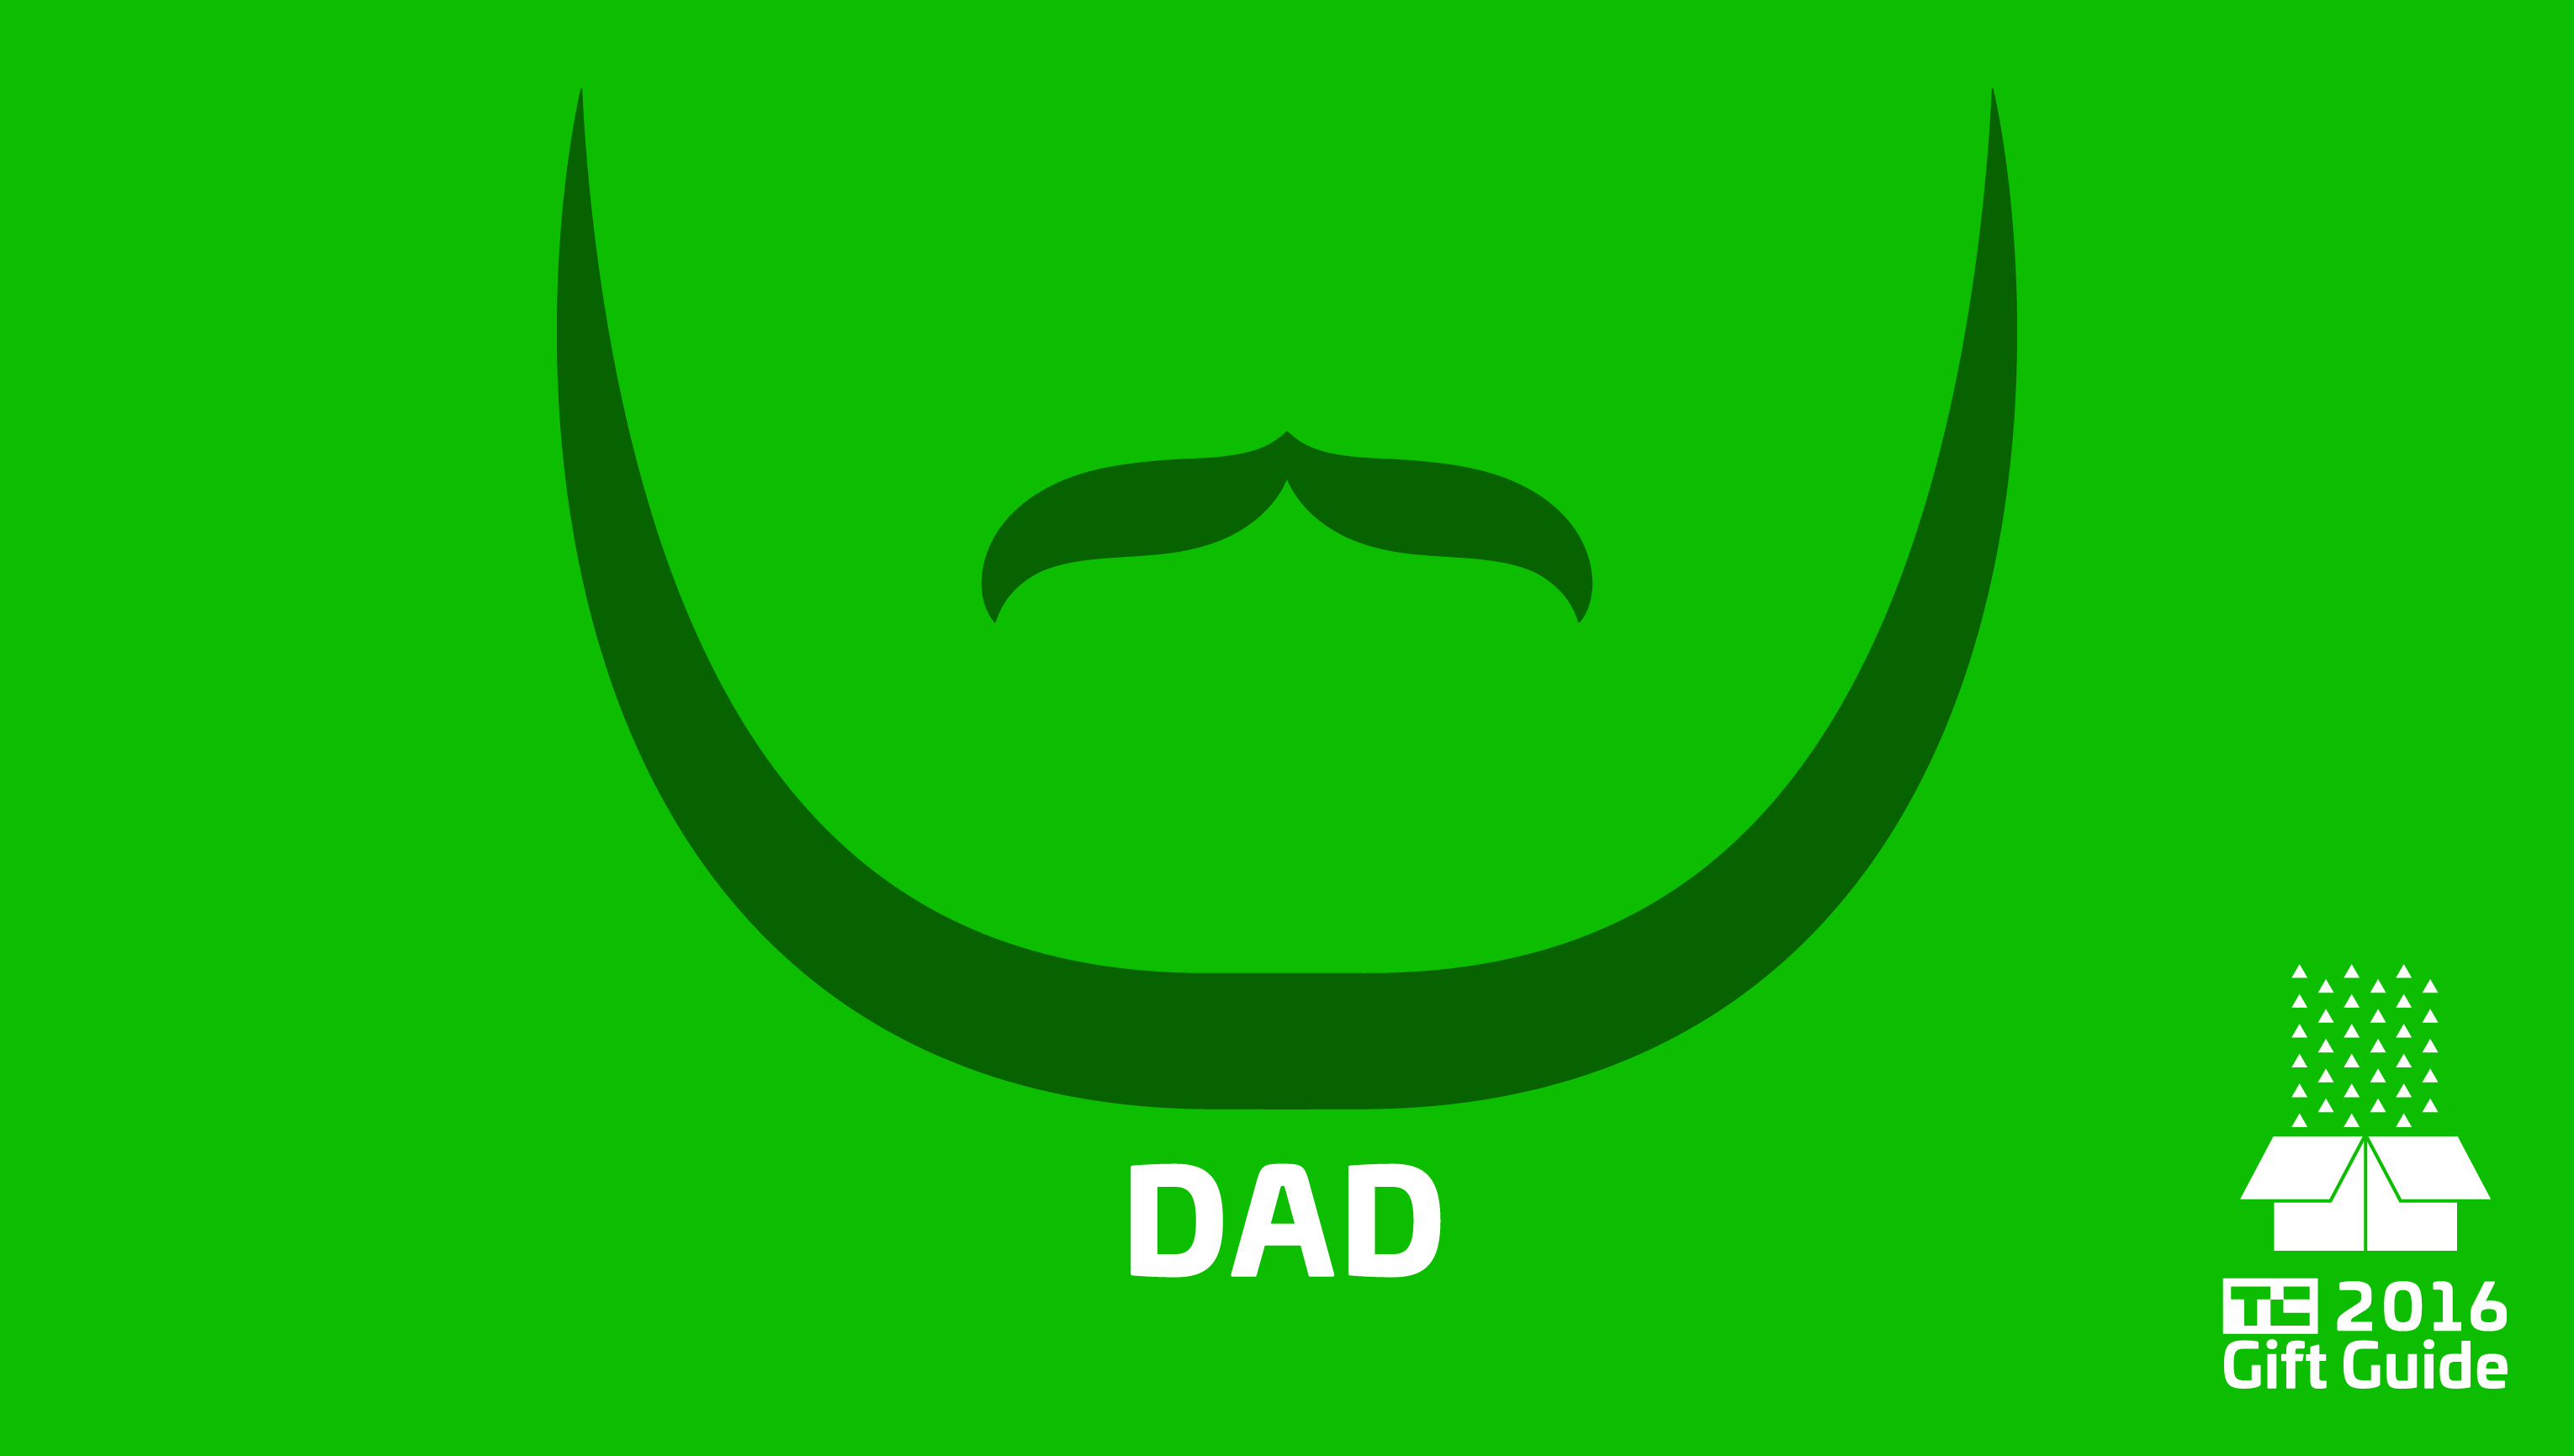 sc 1 st  TechCrunch & 11 awesome gifts for your awesome Dad | TechCrunch